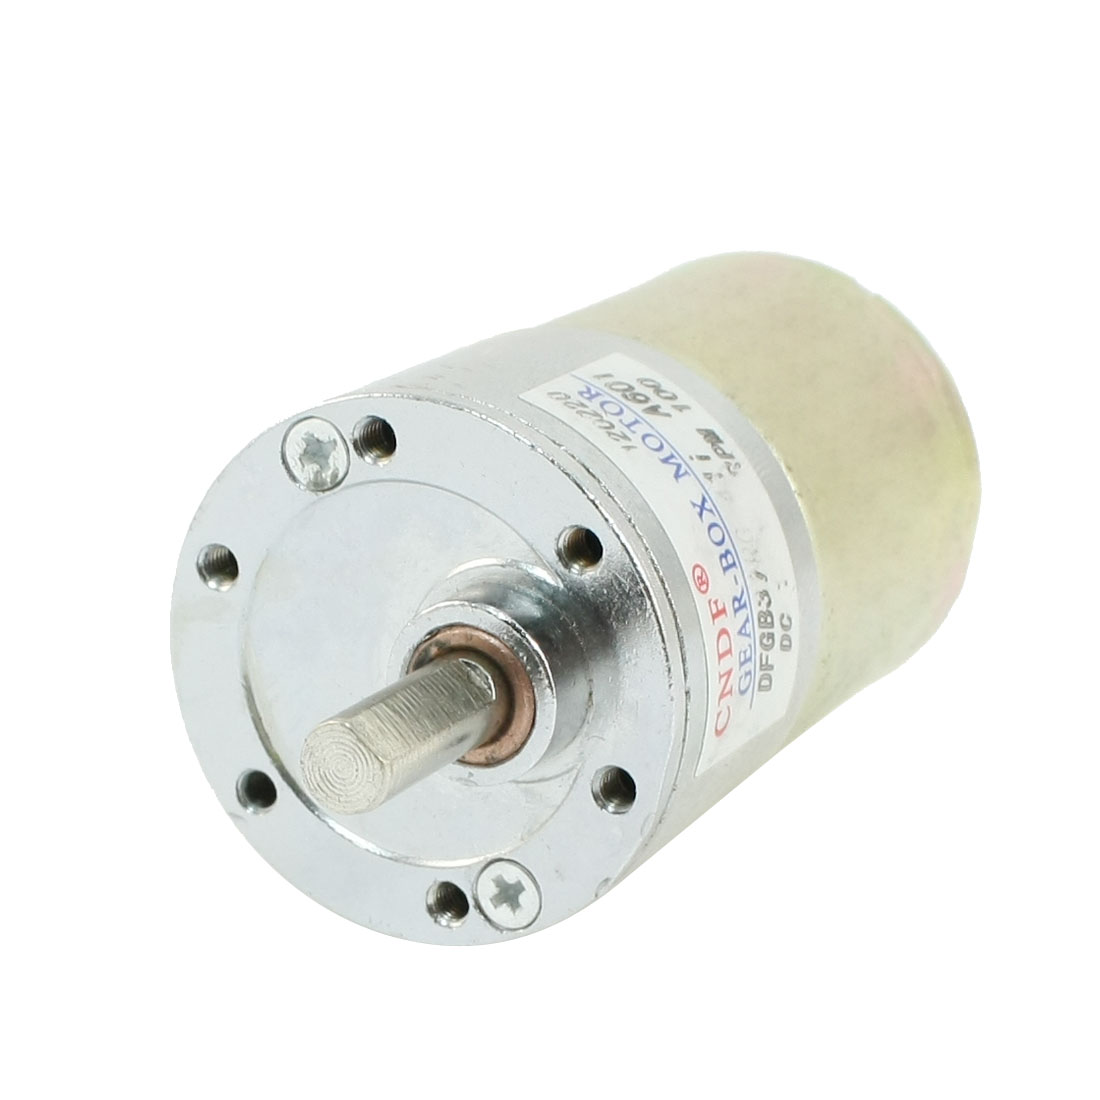 DFGB37RG-41 Cylinder Shape DC12V Speed 100RPM Geared Motor